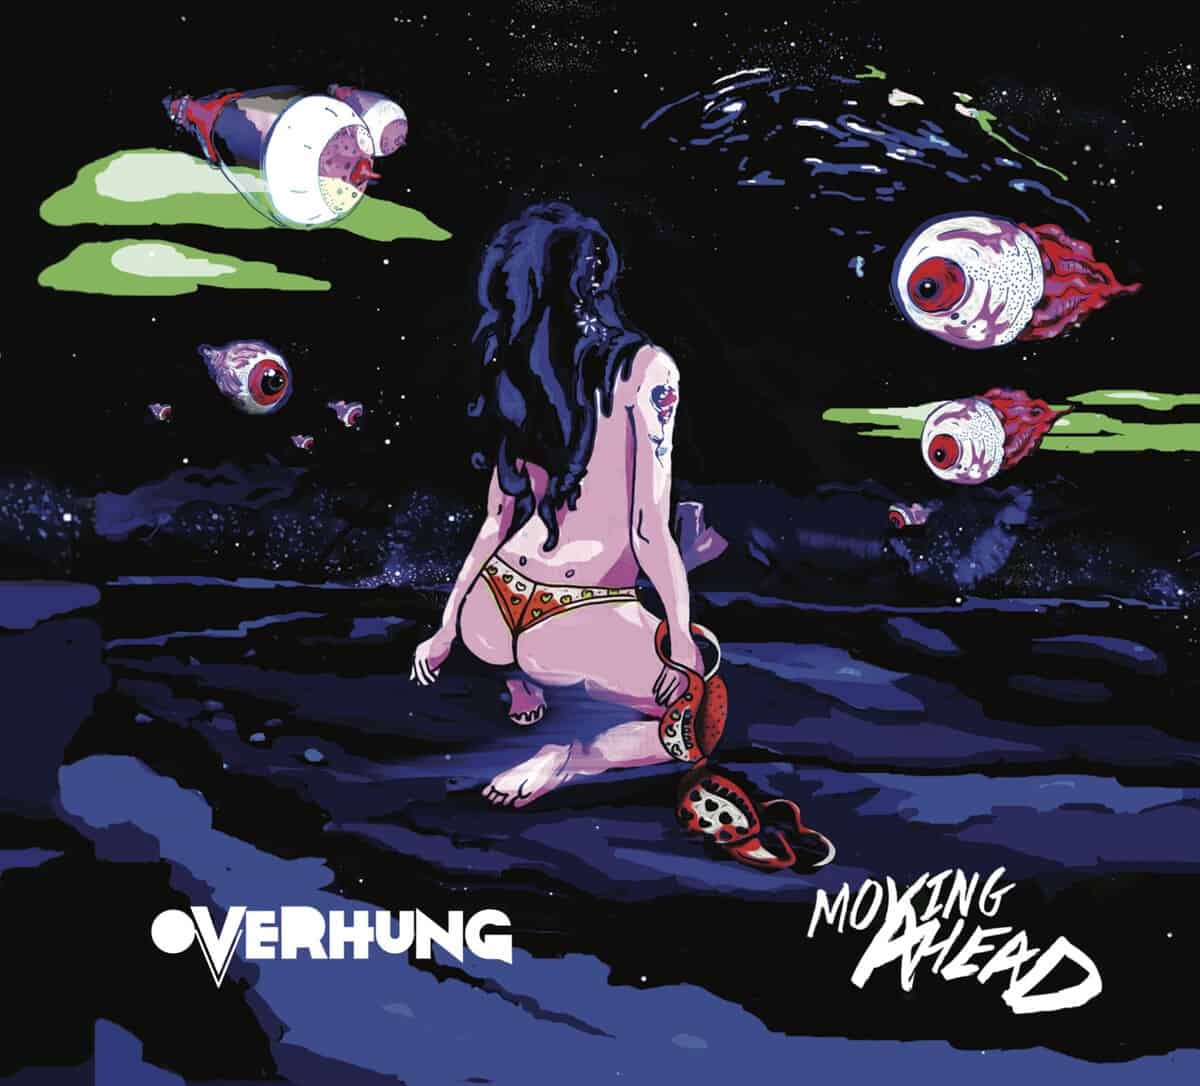 overhung-movung-ahead-album-cover